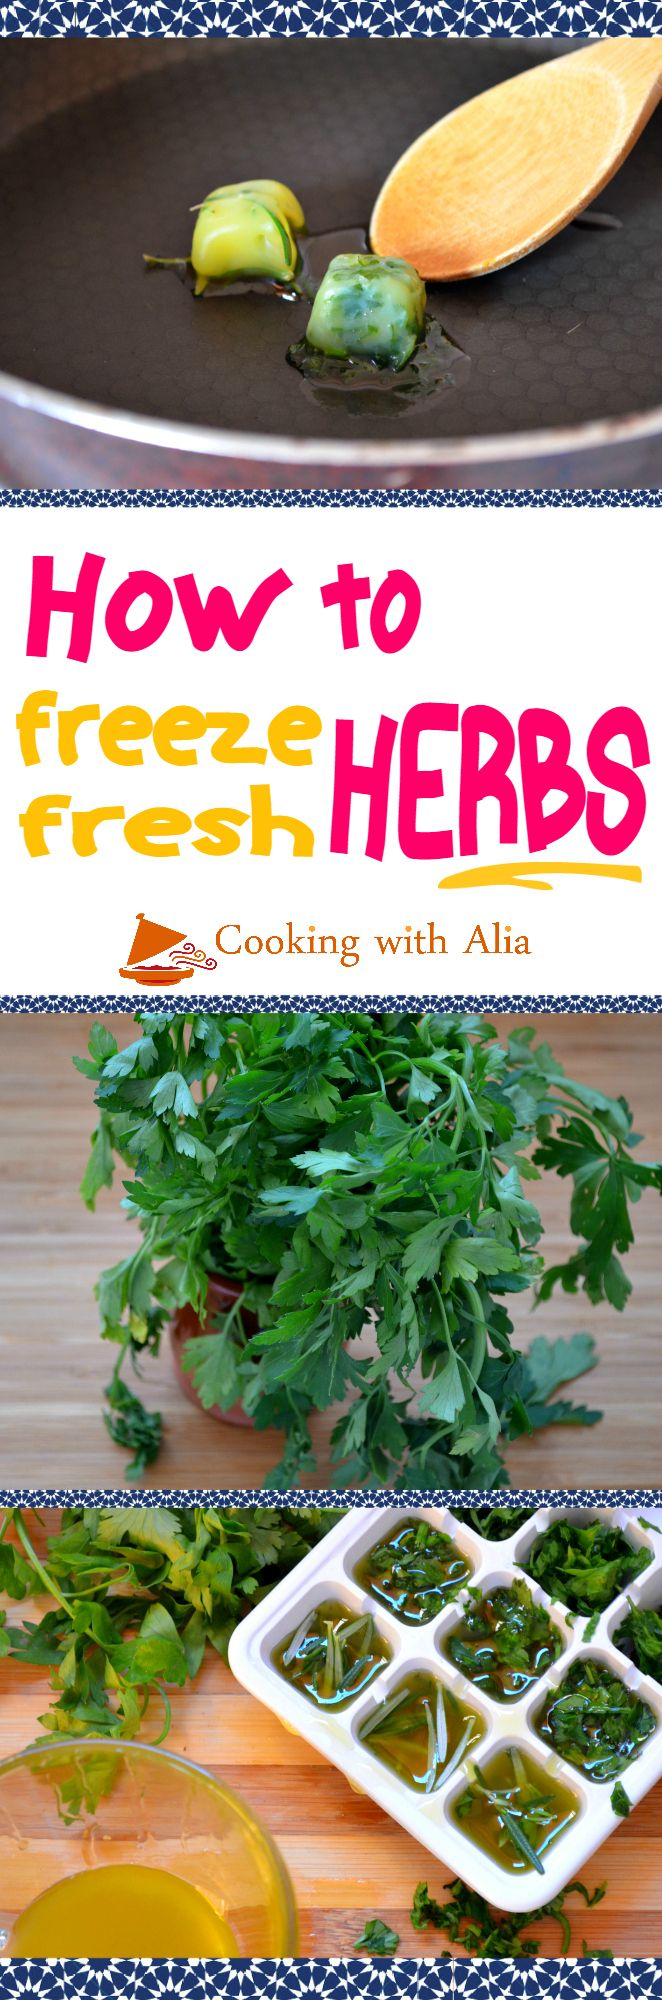 You have more herbs than what you need, but you don't want to throw them! This trick will allow you to save them and use them at anytime. Herbs and essential oils lovers - this easy trick is made especially for you! Finely chop the herbs (parsley and cilantro). Place in an ice tray. Add olive oil & freeze